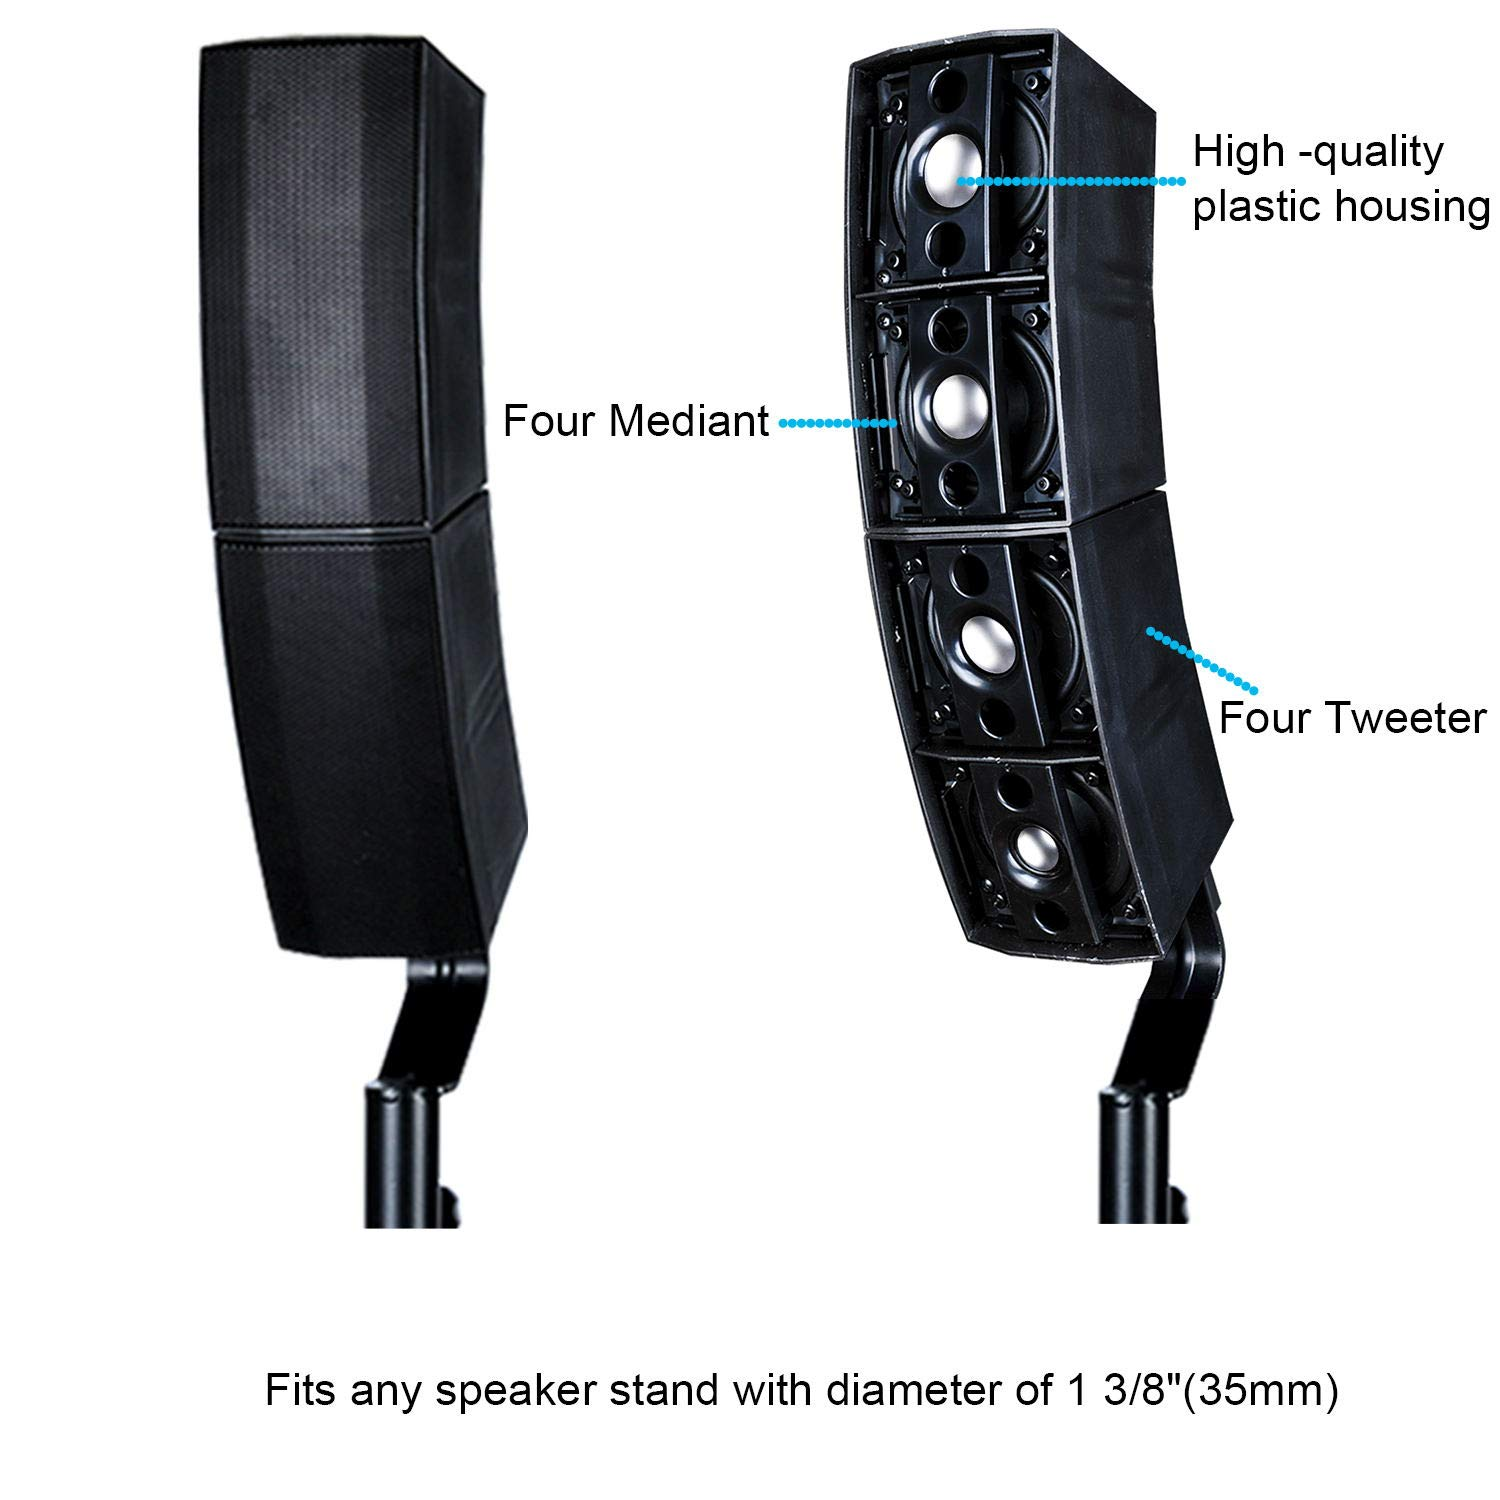 Reck Audio Club 3000 D 4X4 Passive Line Array Speaker System Sets with  Connecting Cables Eight Tweeter and Eight mid-tweeters, 8 Ohms Impedance